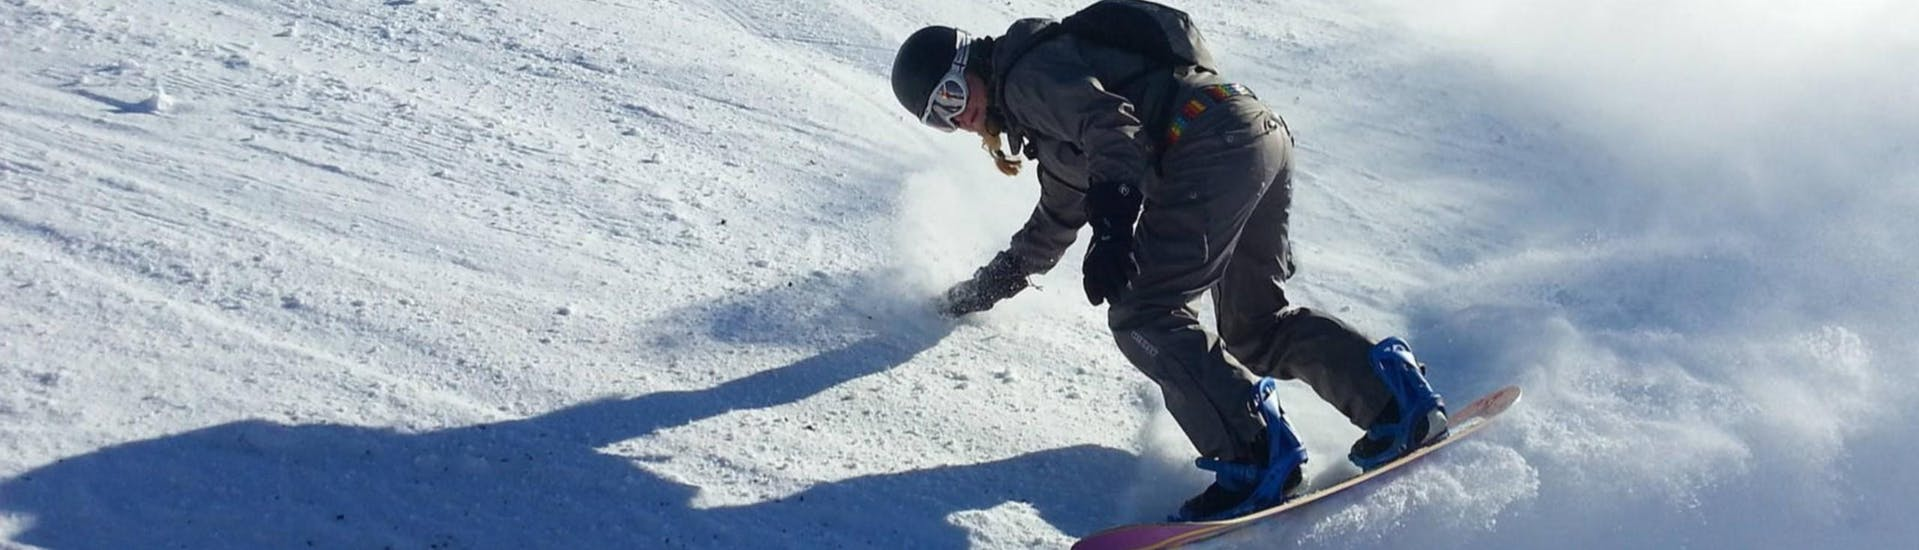 A young woman is practising her snowboarding skills during her private snowboarding lessons for kids and adults with Skischule Schwarzenberg am Bödele.